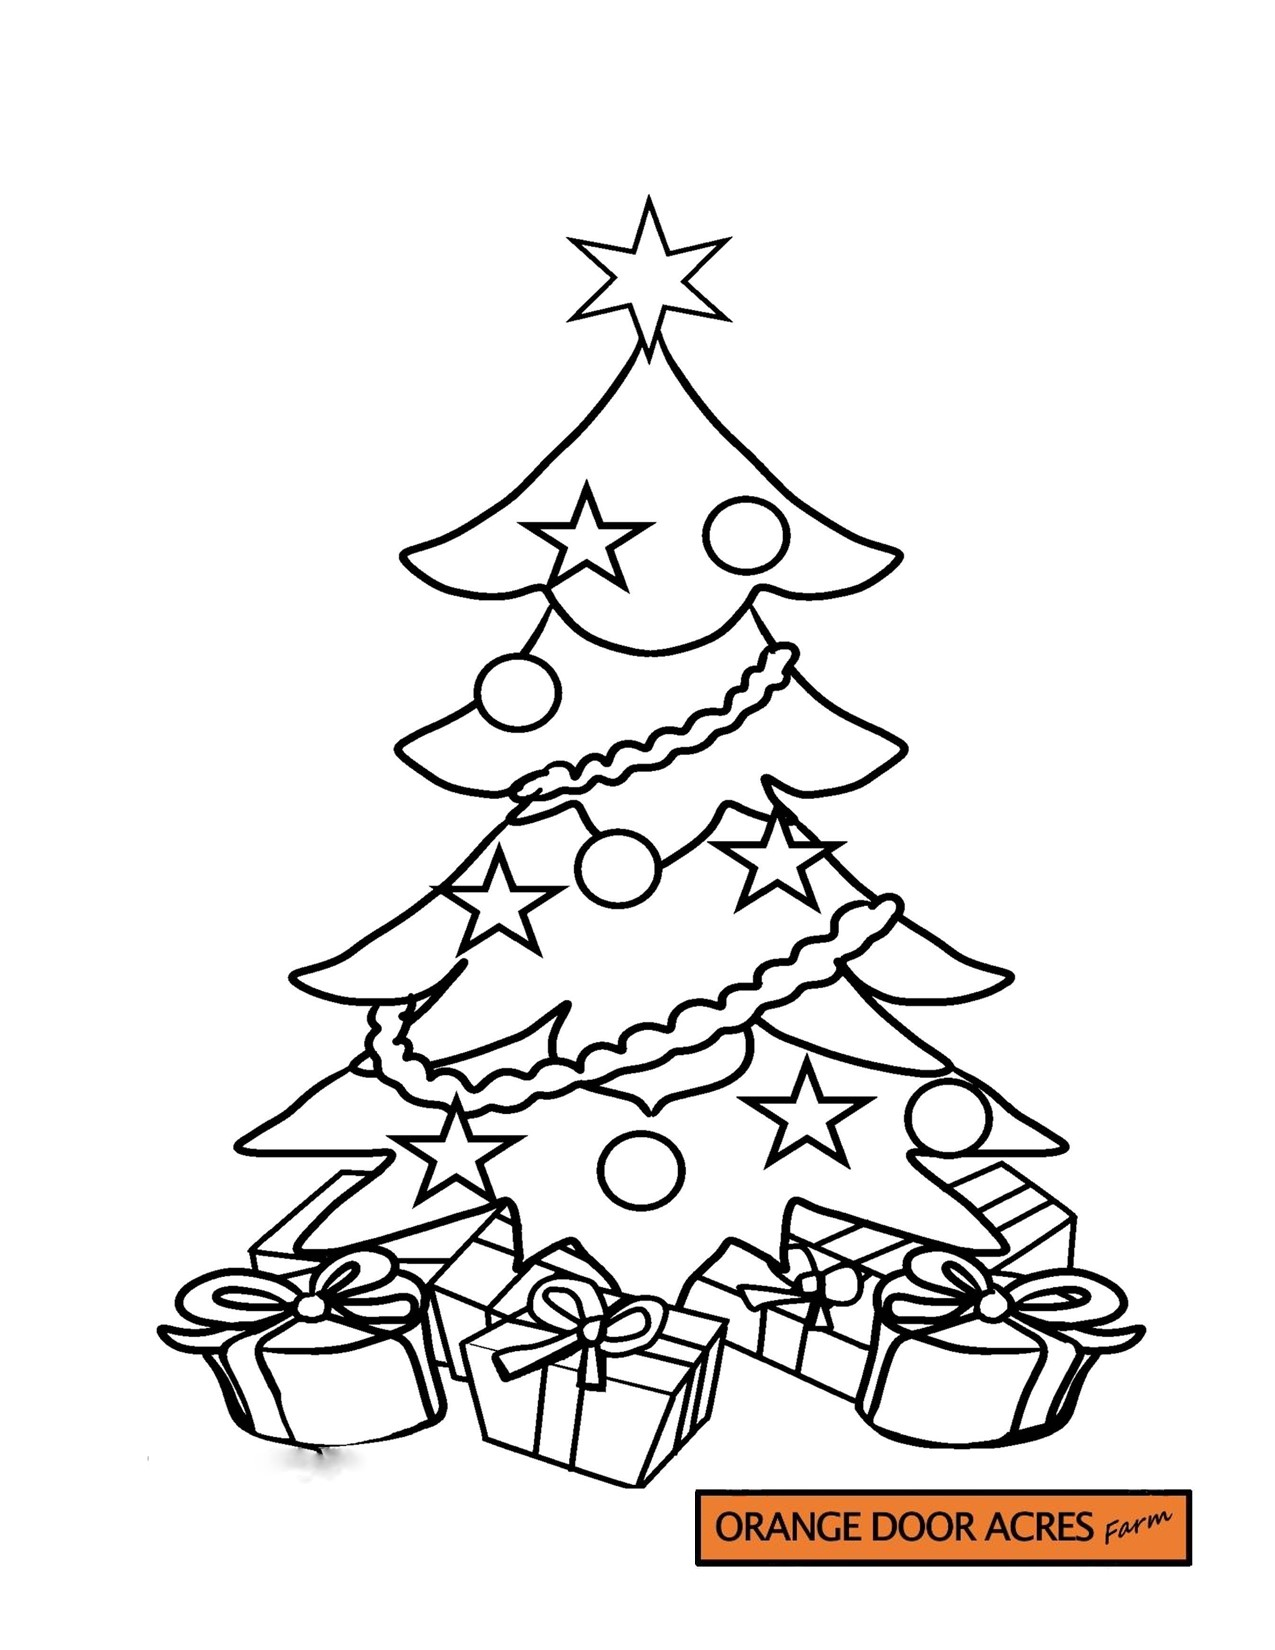 Colouring Page – 8